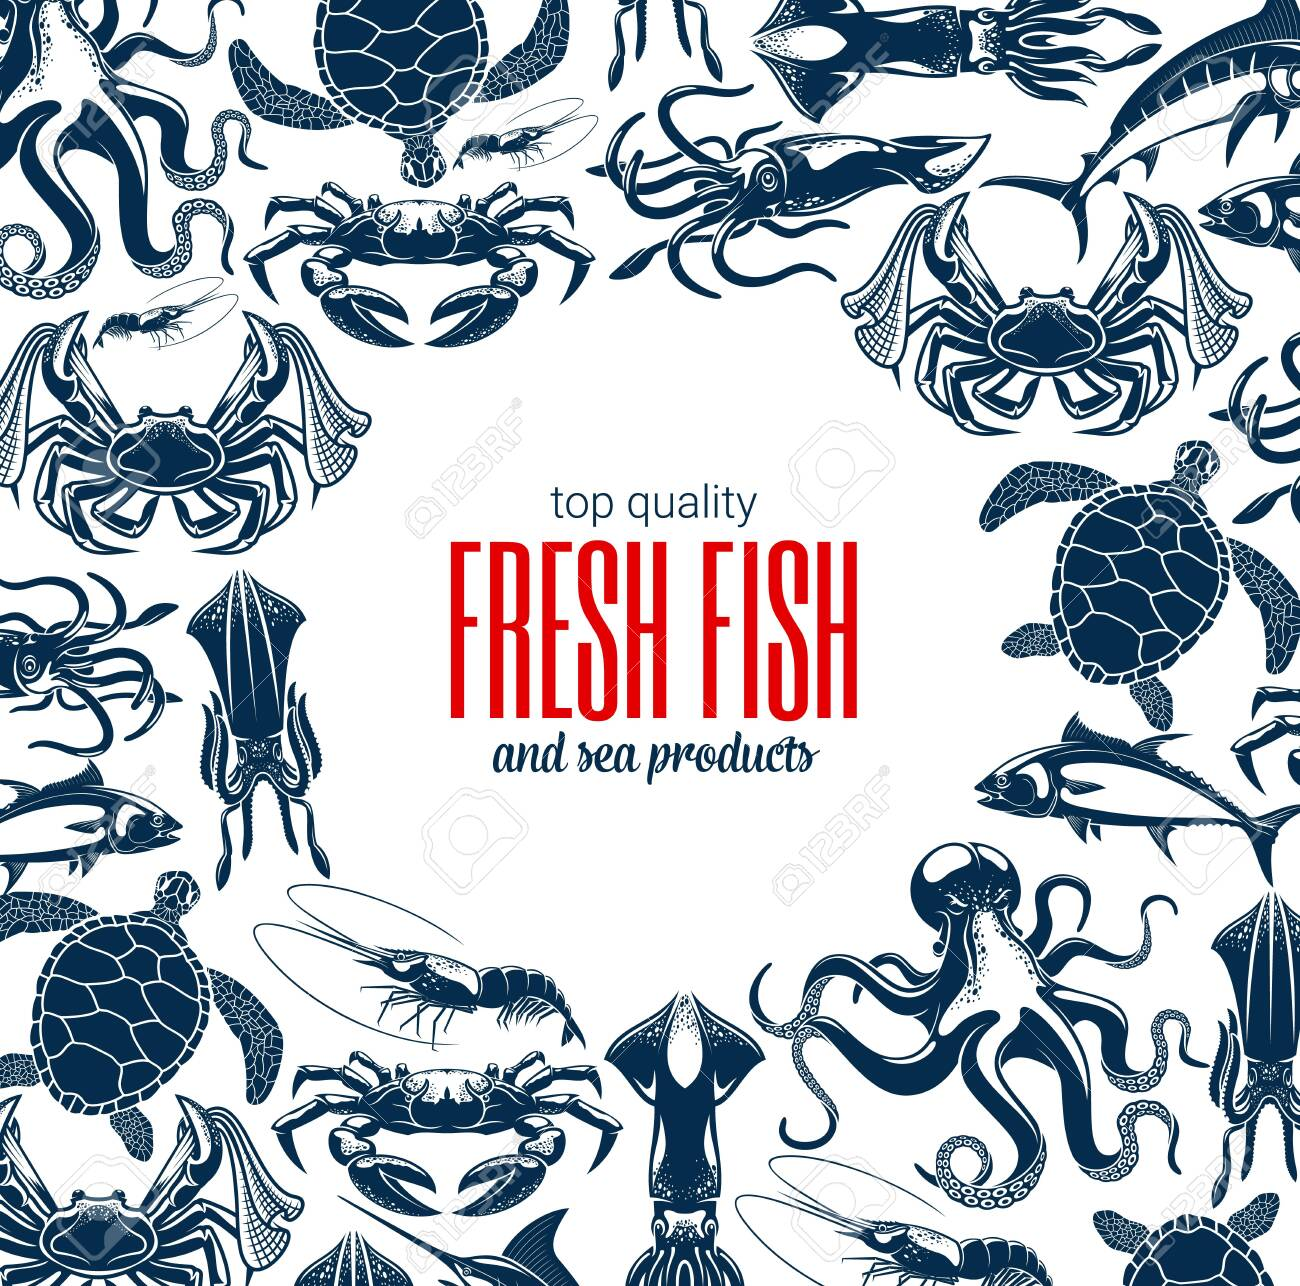 Fish and seafood products store or shop poster. Vector sea food fishery and ocean fishing catch, octopus, squid and shrimp or prawn, lobsters with crabs, crayfish and tuna, turtle and marlin - 130695446